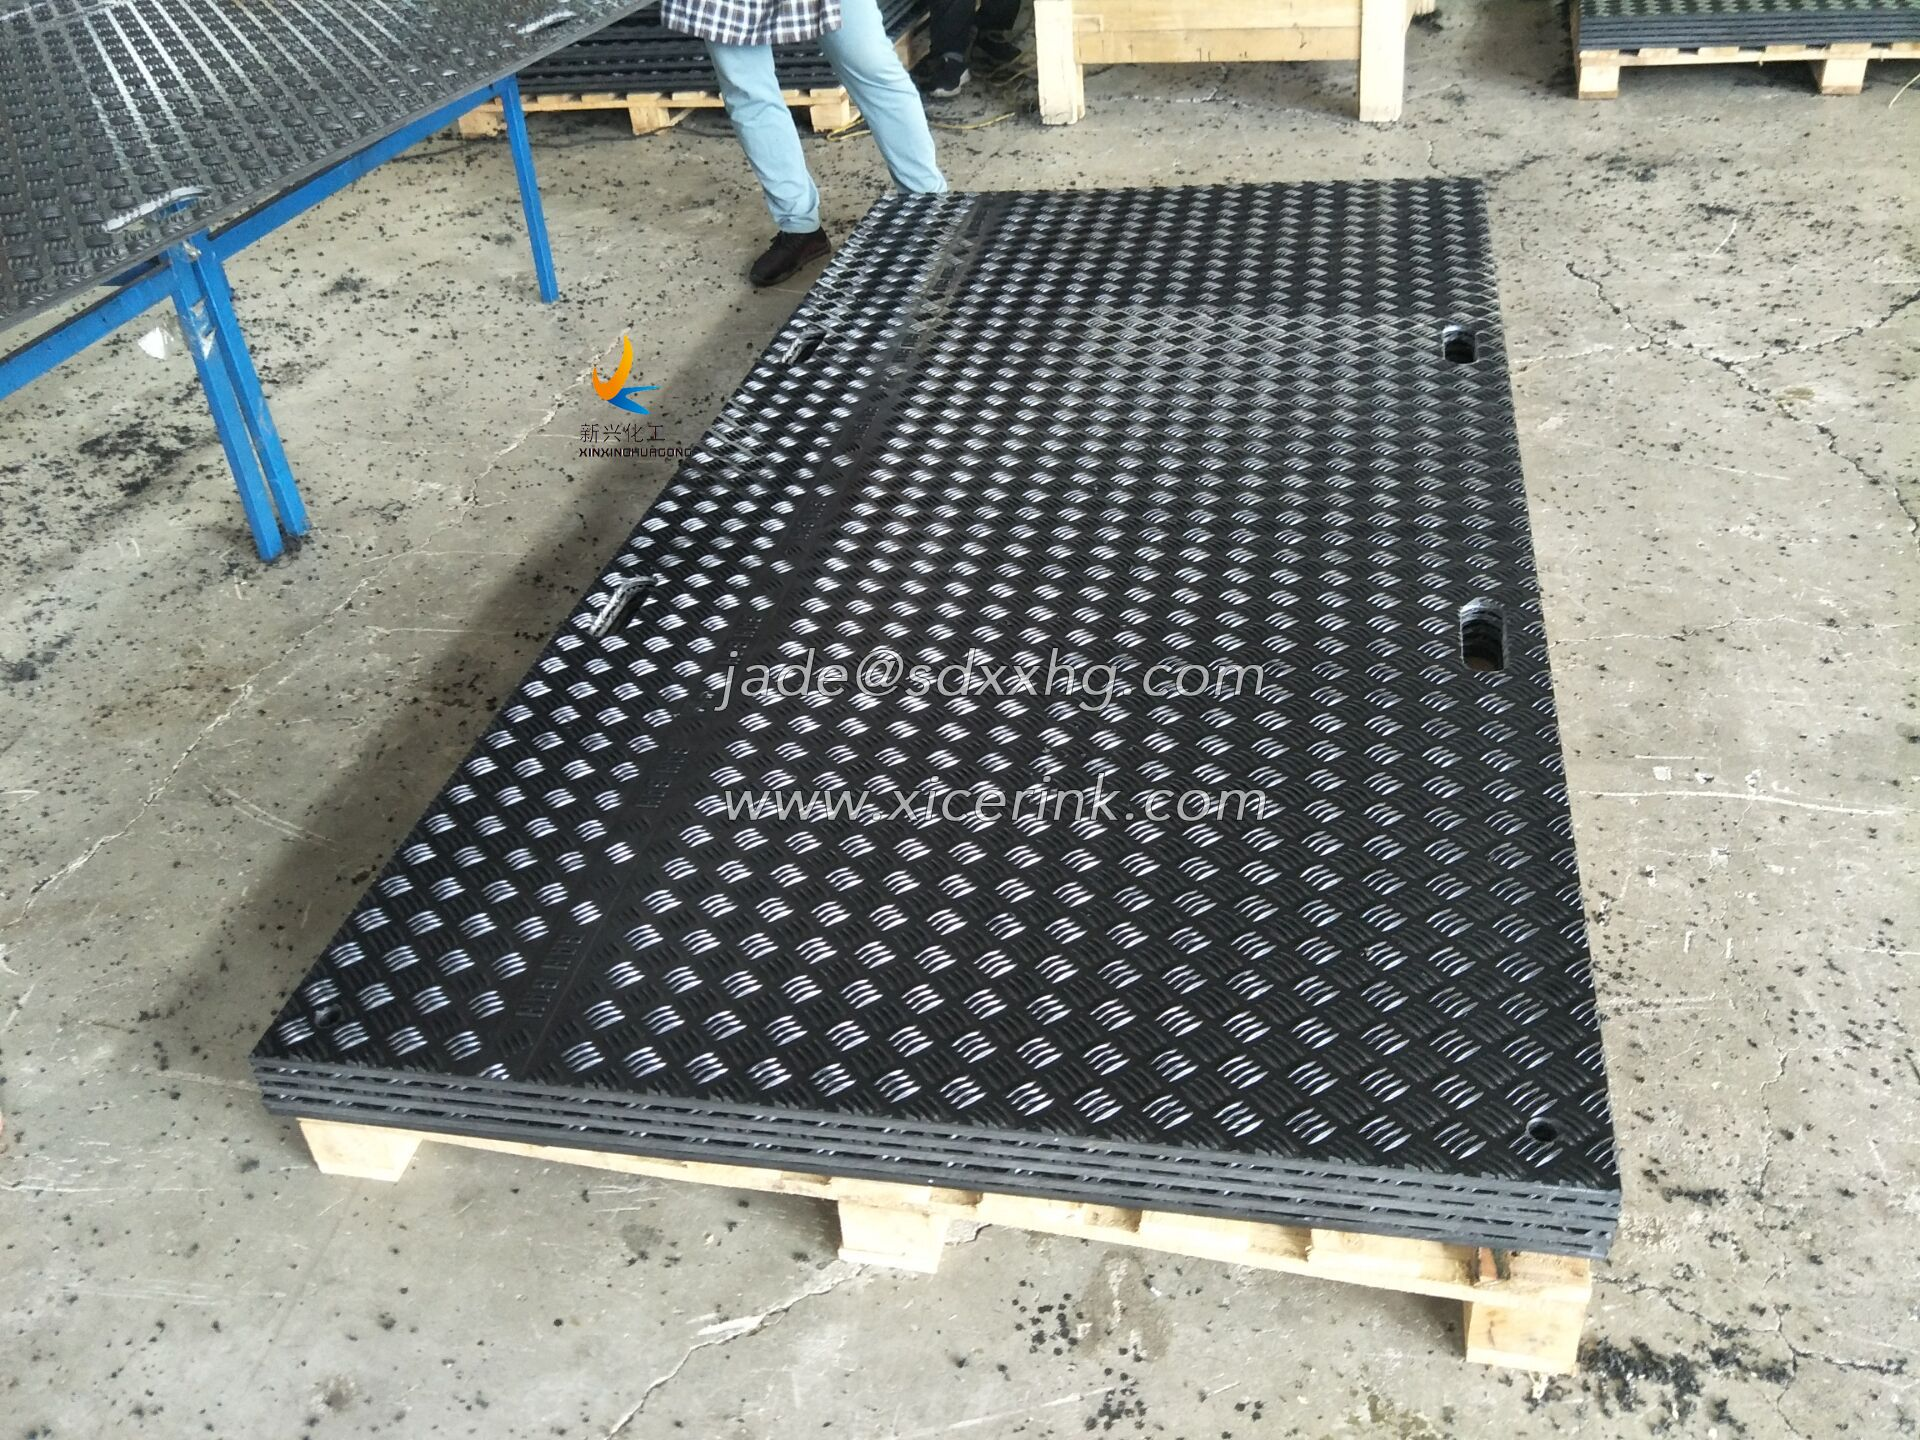 4x8ft Composite Polymer Mobile Road Plates